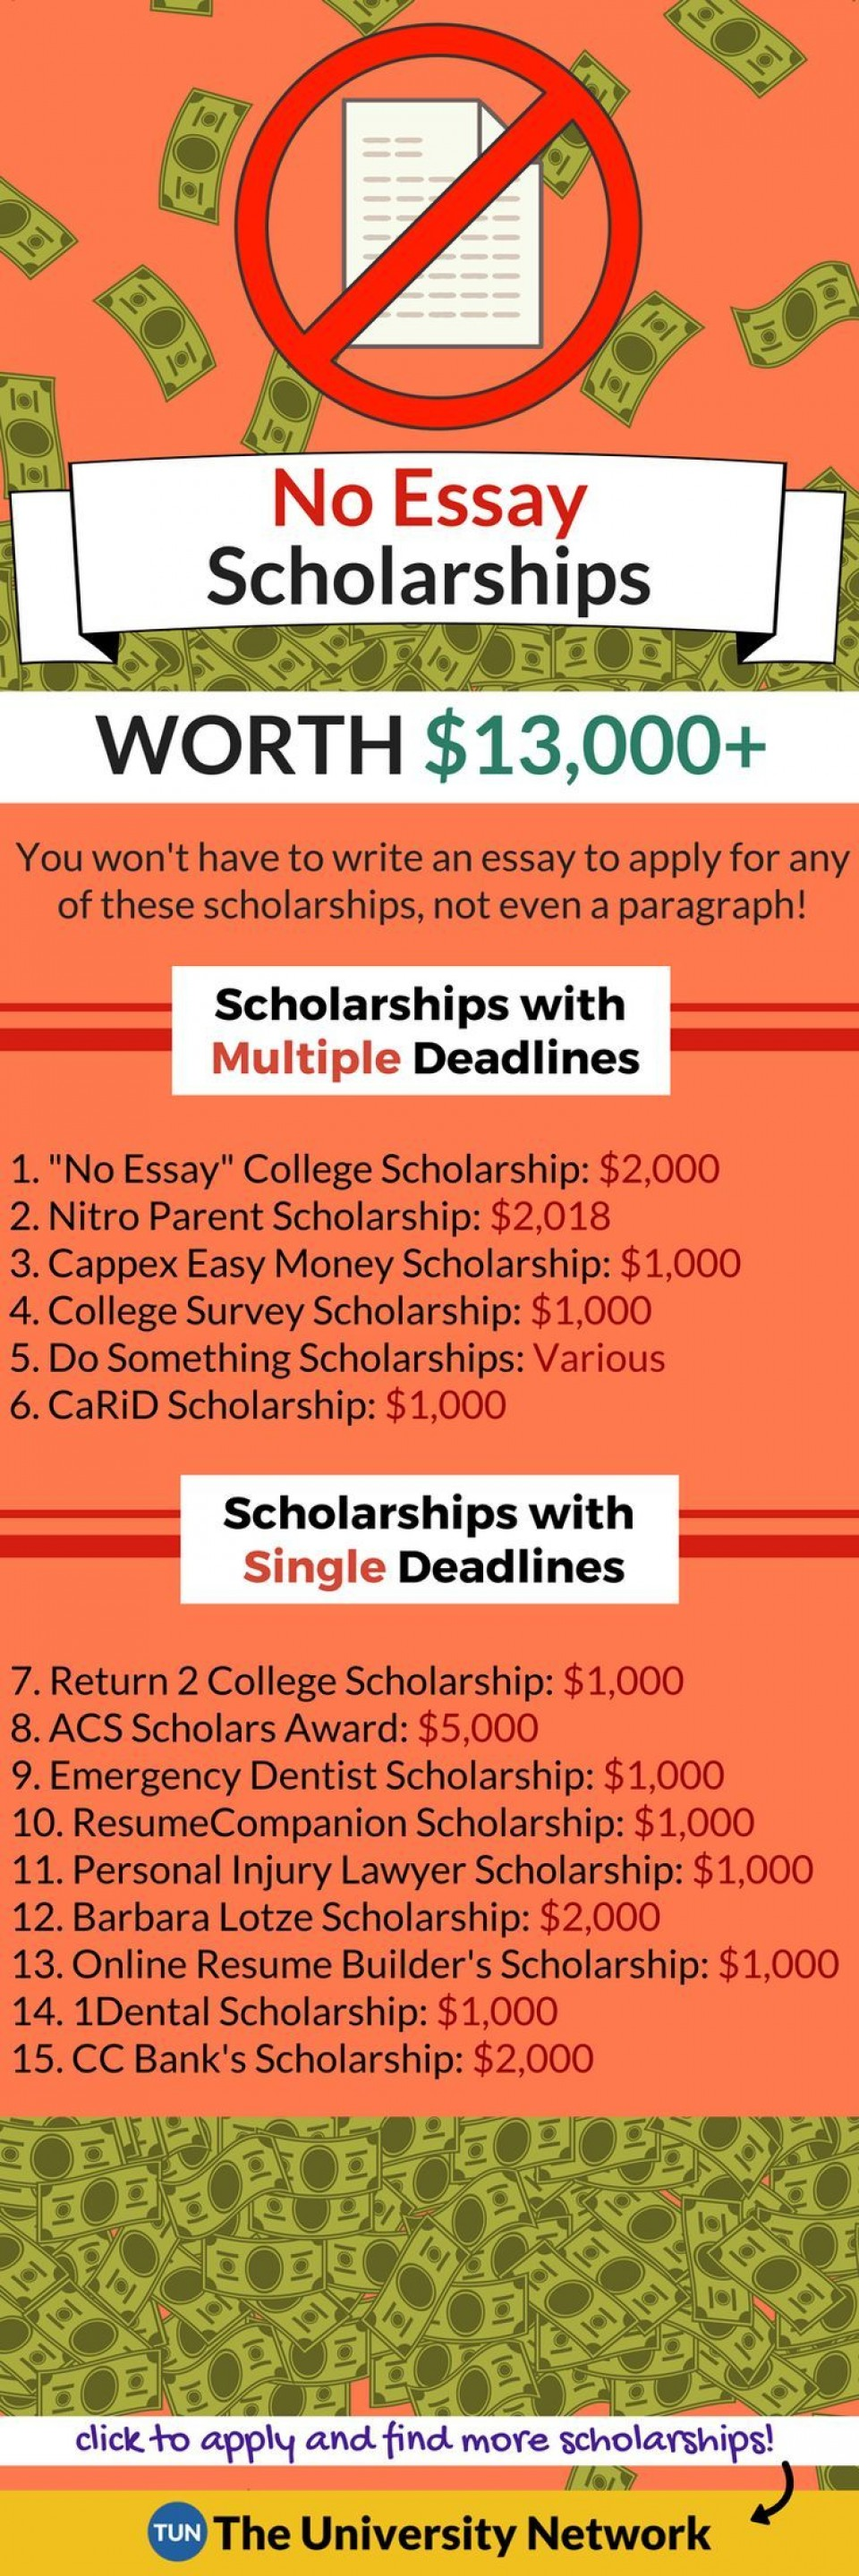 013 Essay Example No Exceptional Scholarships For Undergraduates College Students 2019 960